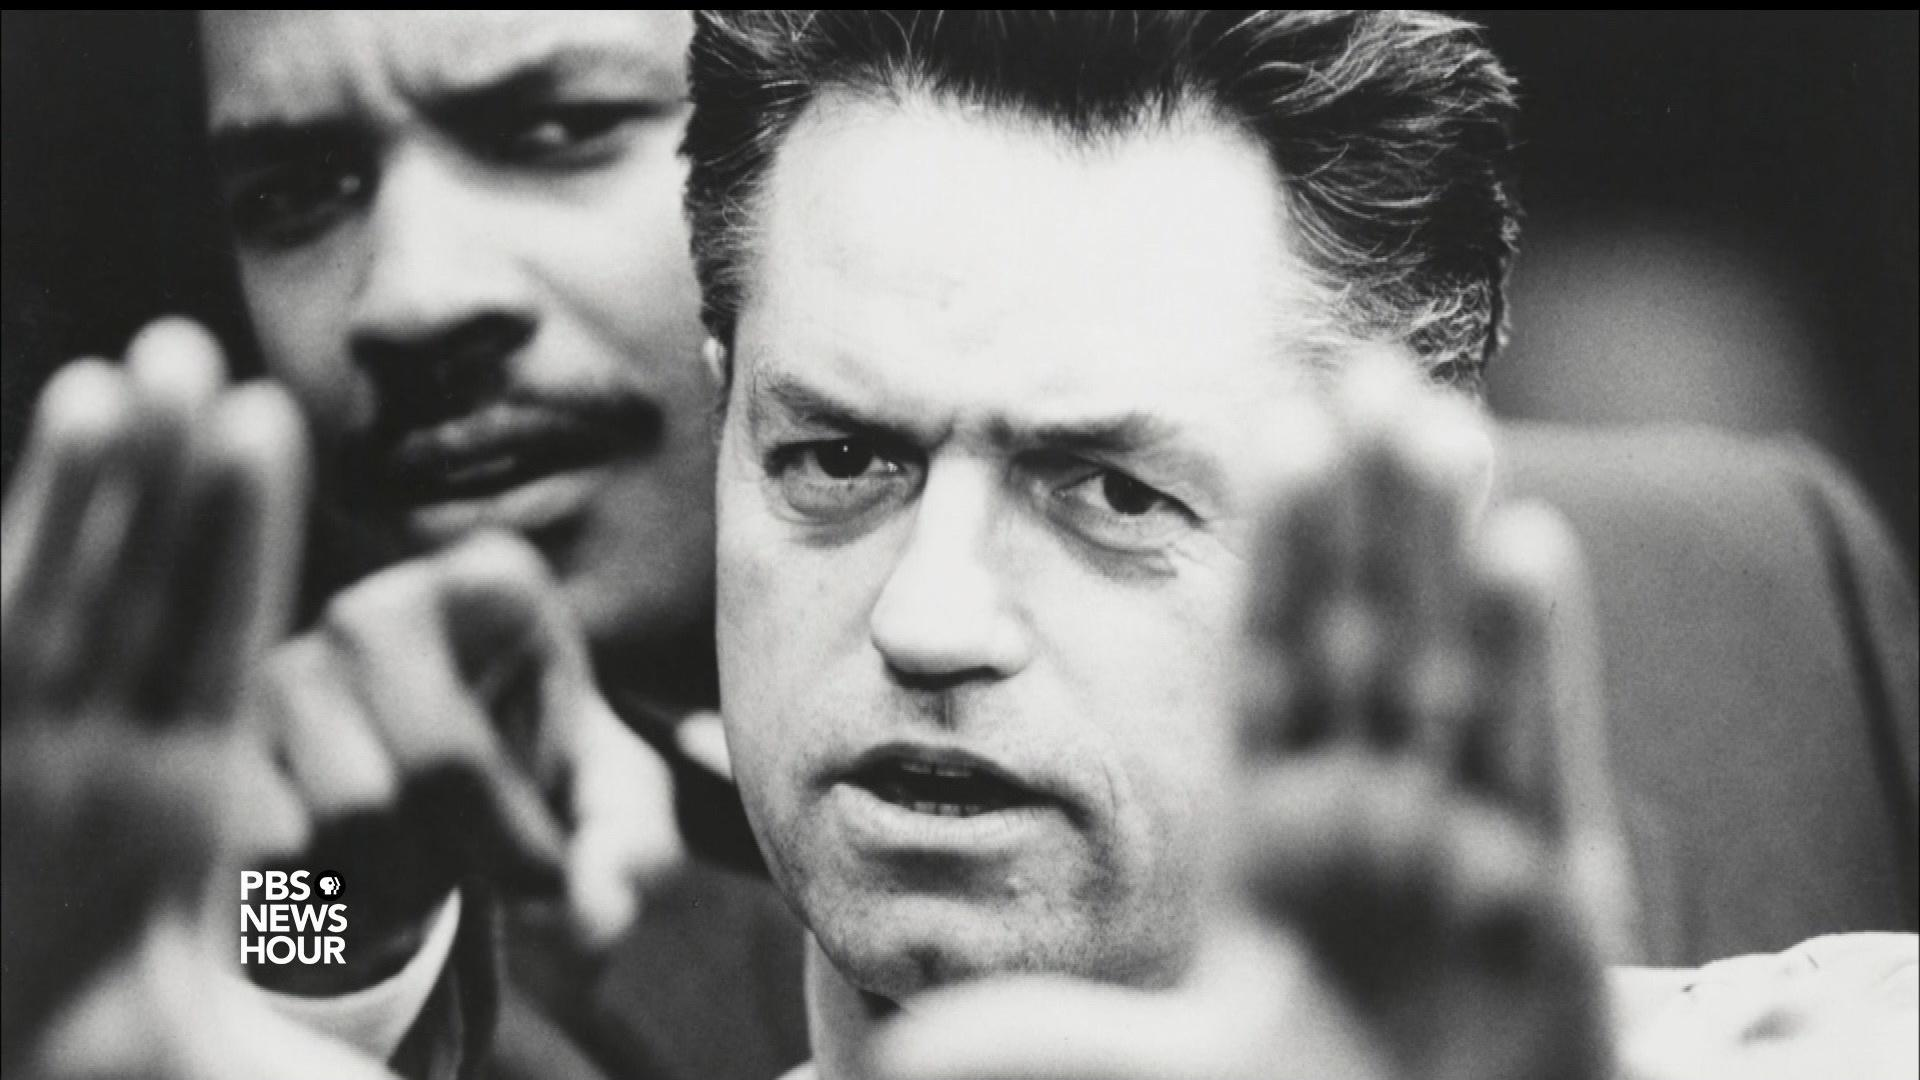 Remembering Jonathan Demme, director of eclectic, edgy films